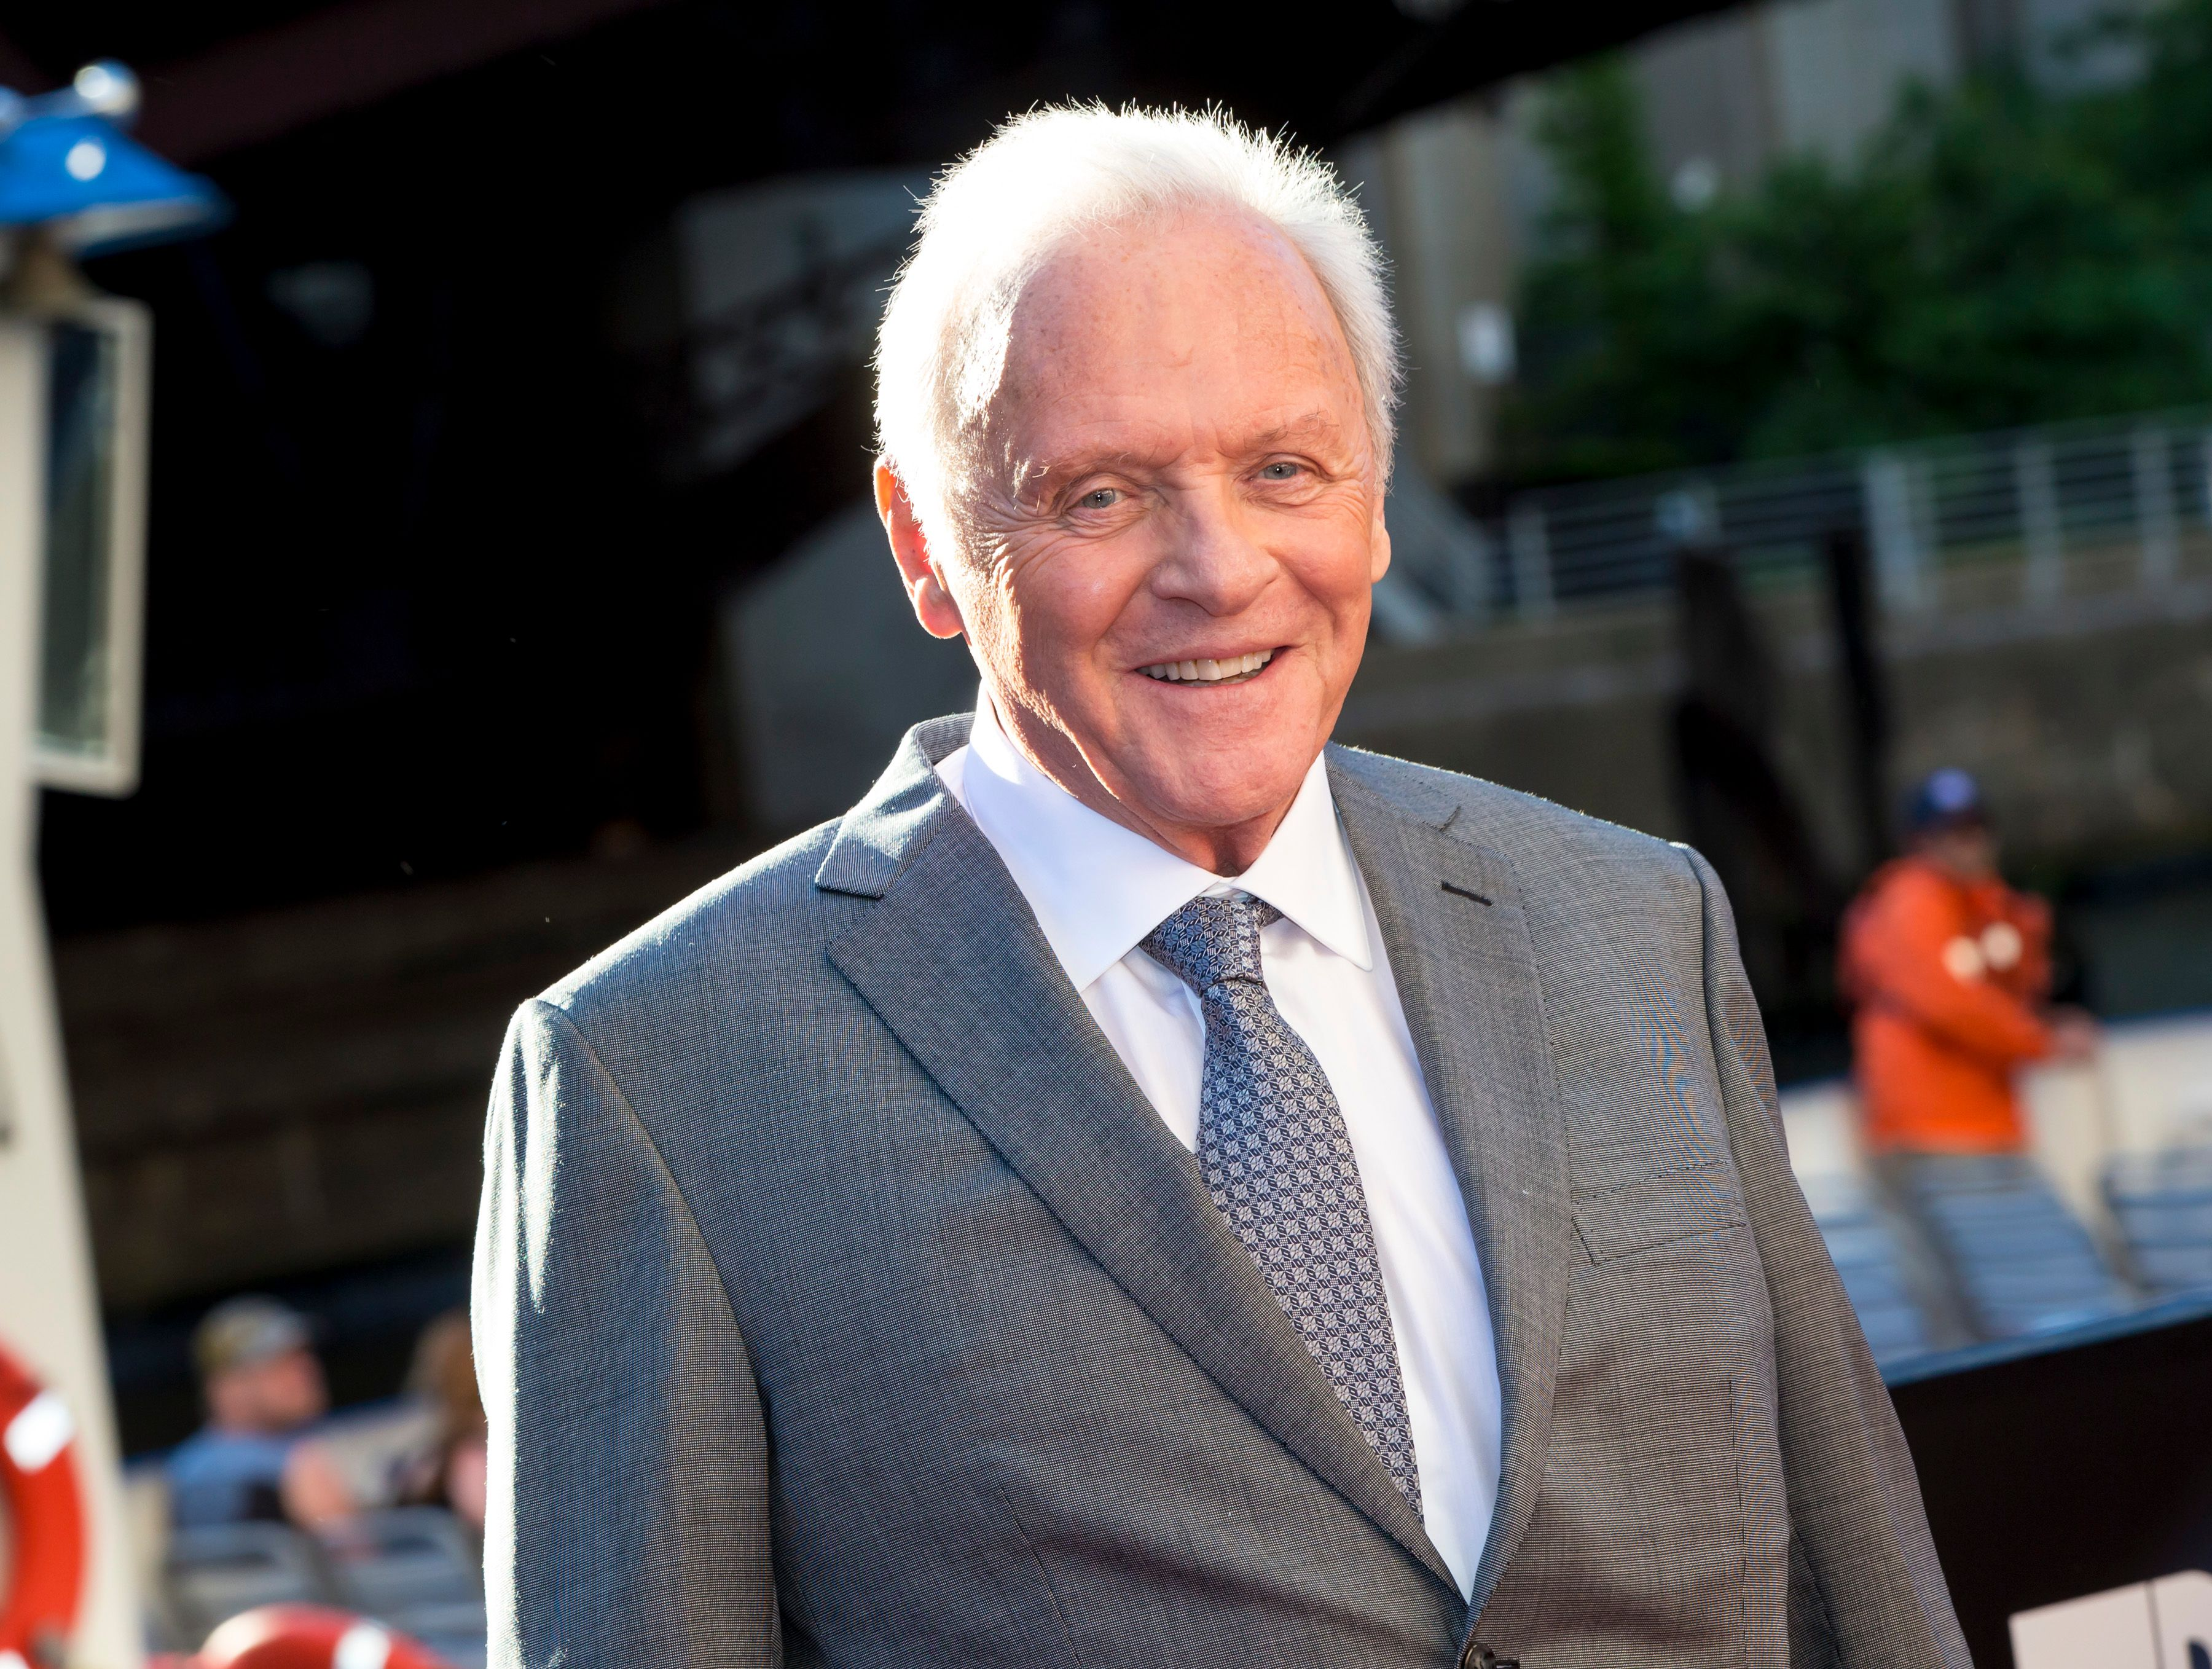 Anthony Hopkins at the Transformers The Last Knight Chicago premiere at Civic Opera Building on June 20, 2017   Photo: Getty Images